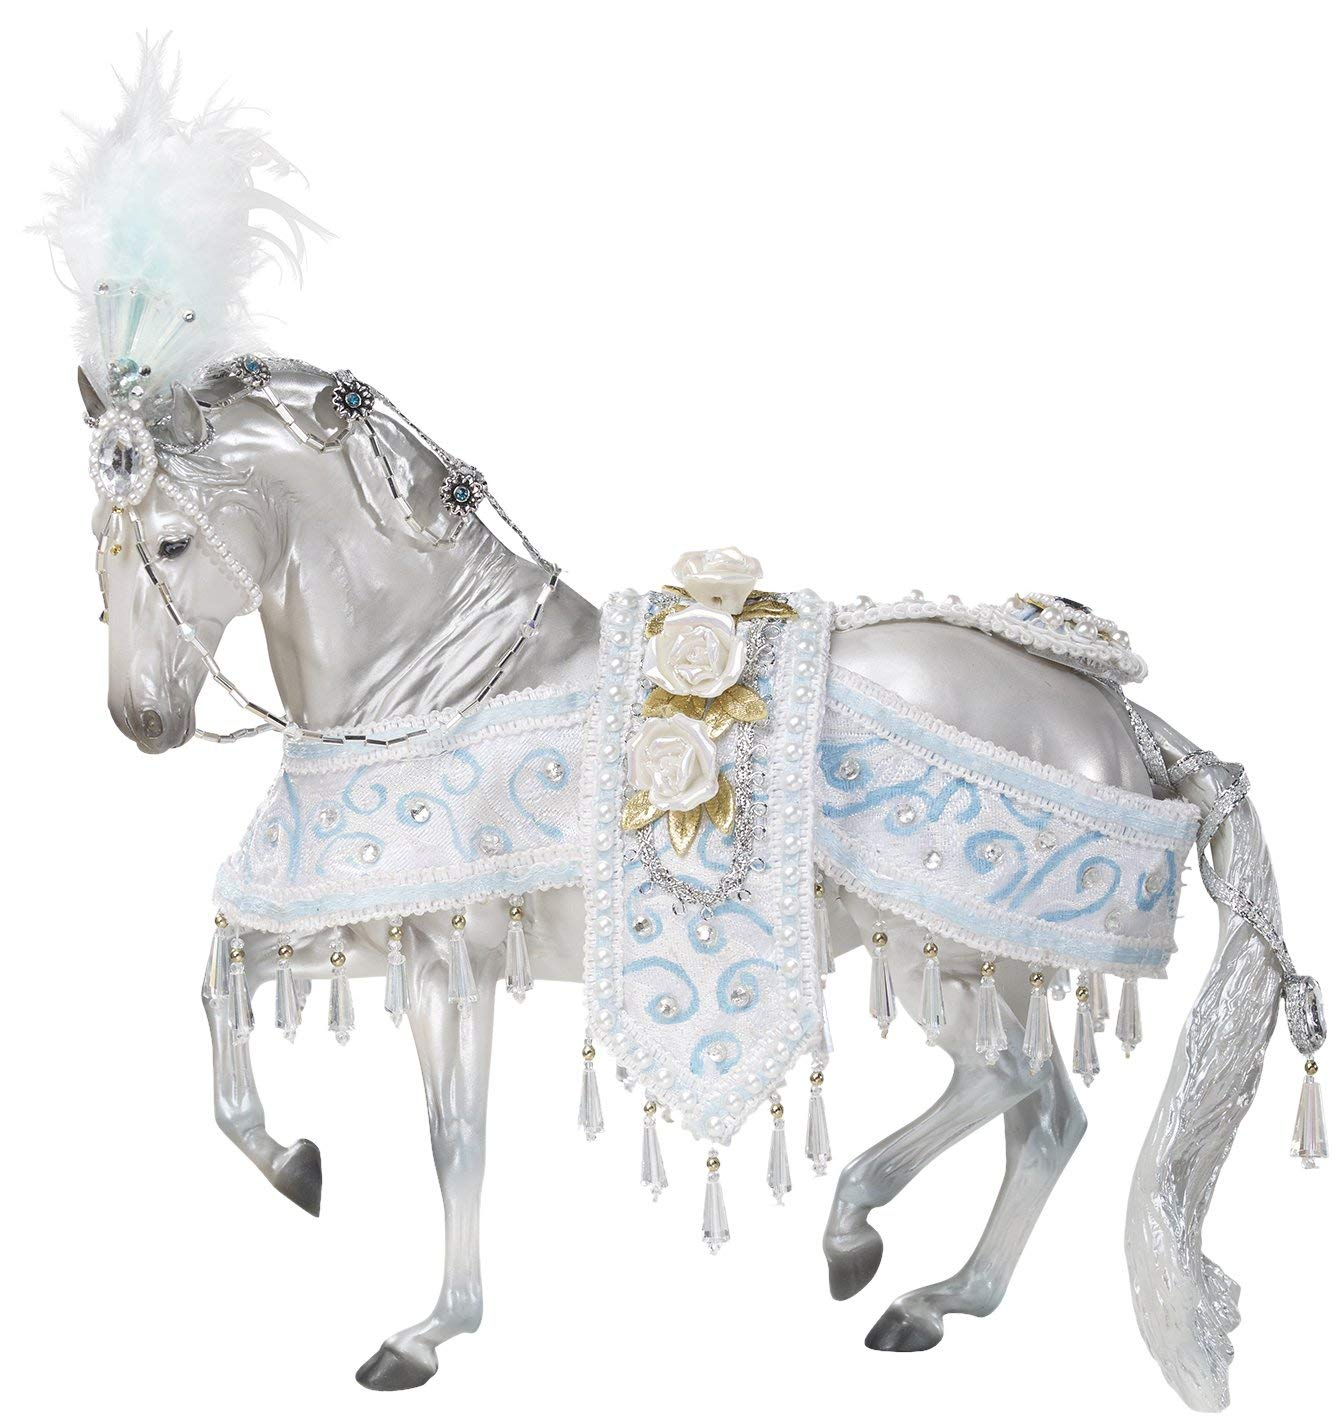 Celestine 2018 Holiday Christmas Collectible Horse